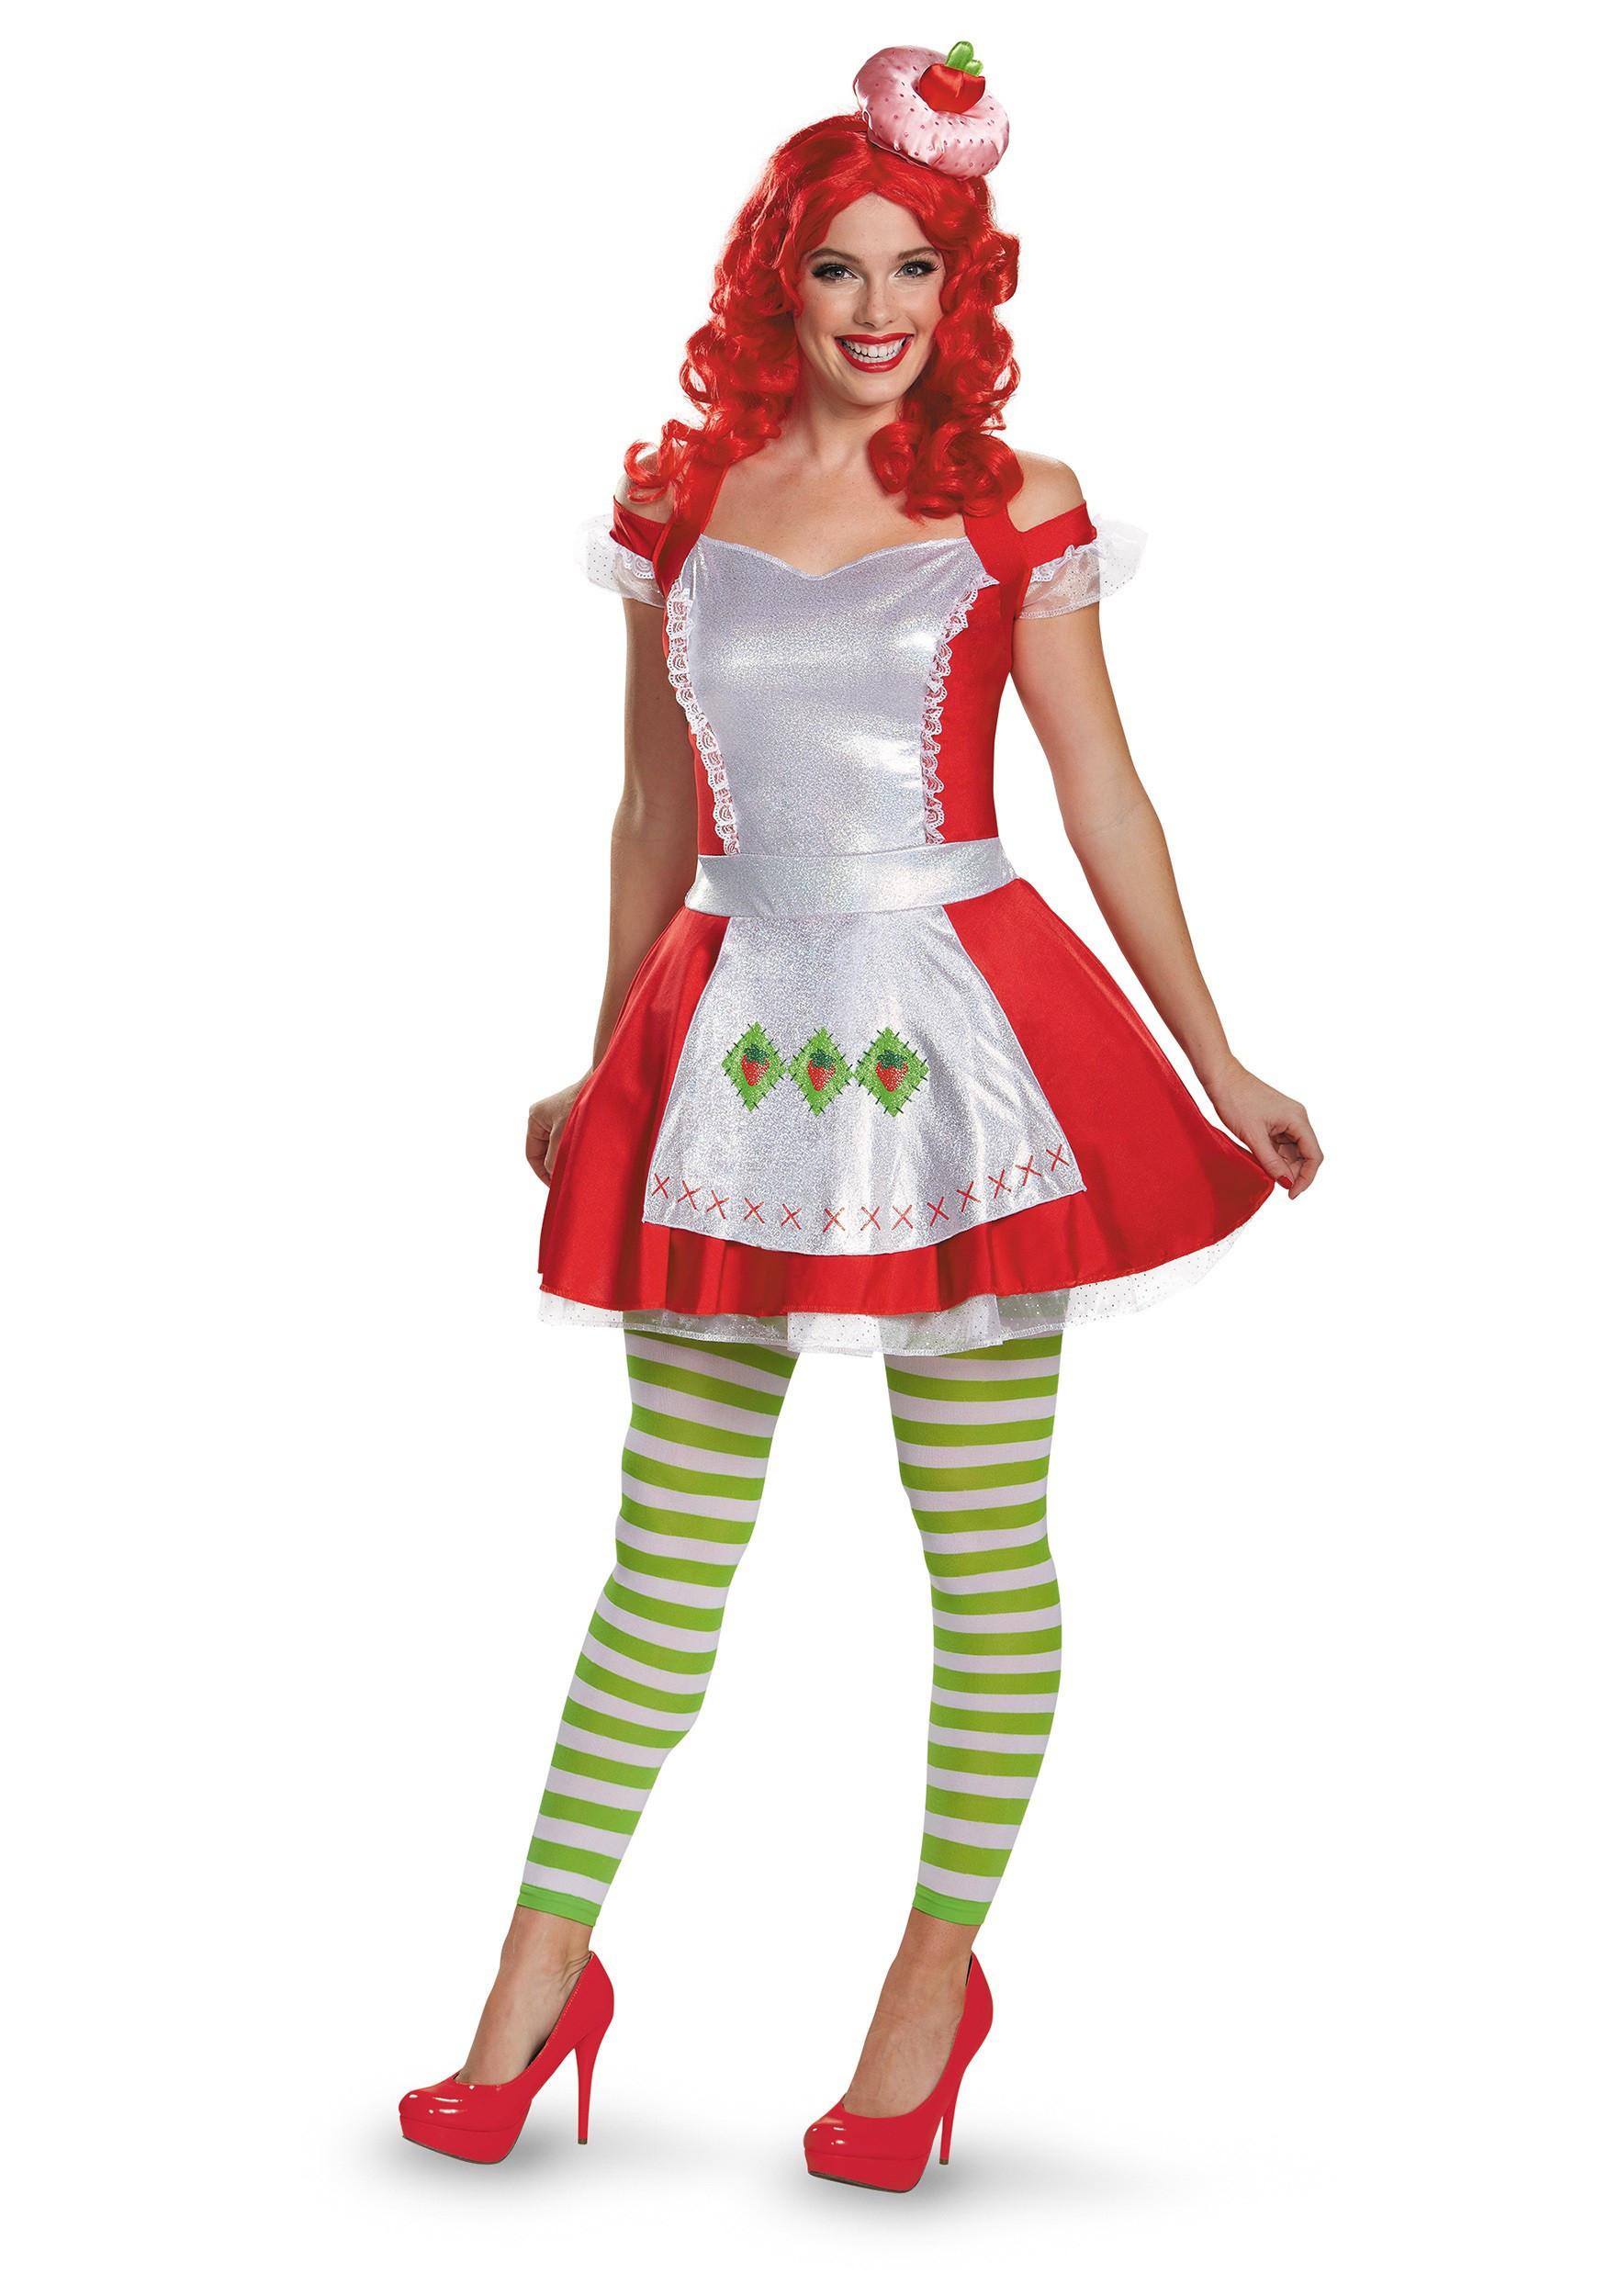 Strawberry Shortcake Halloween Costumes  Strawberry Shortcake Deluxe Adult Costume